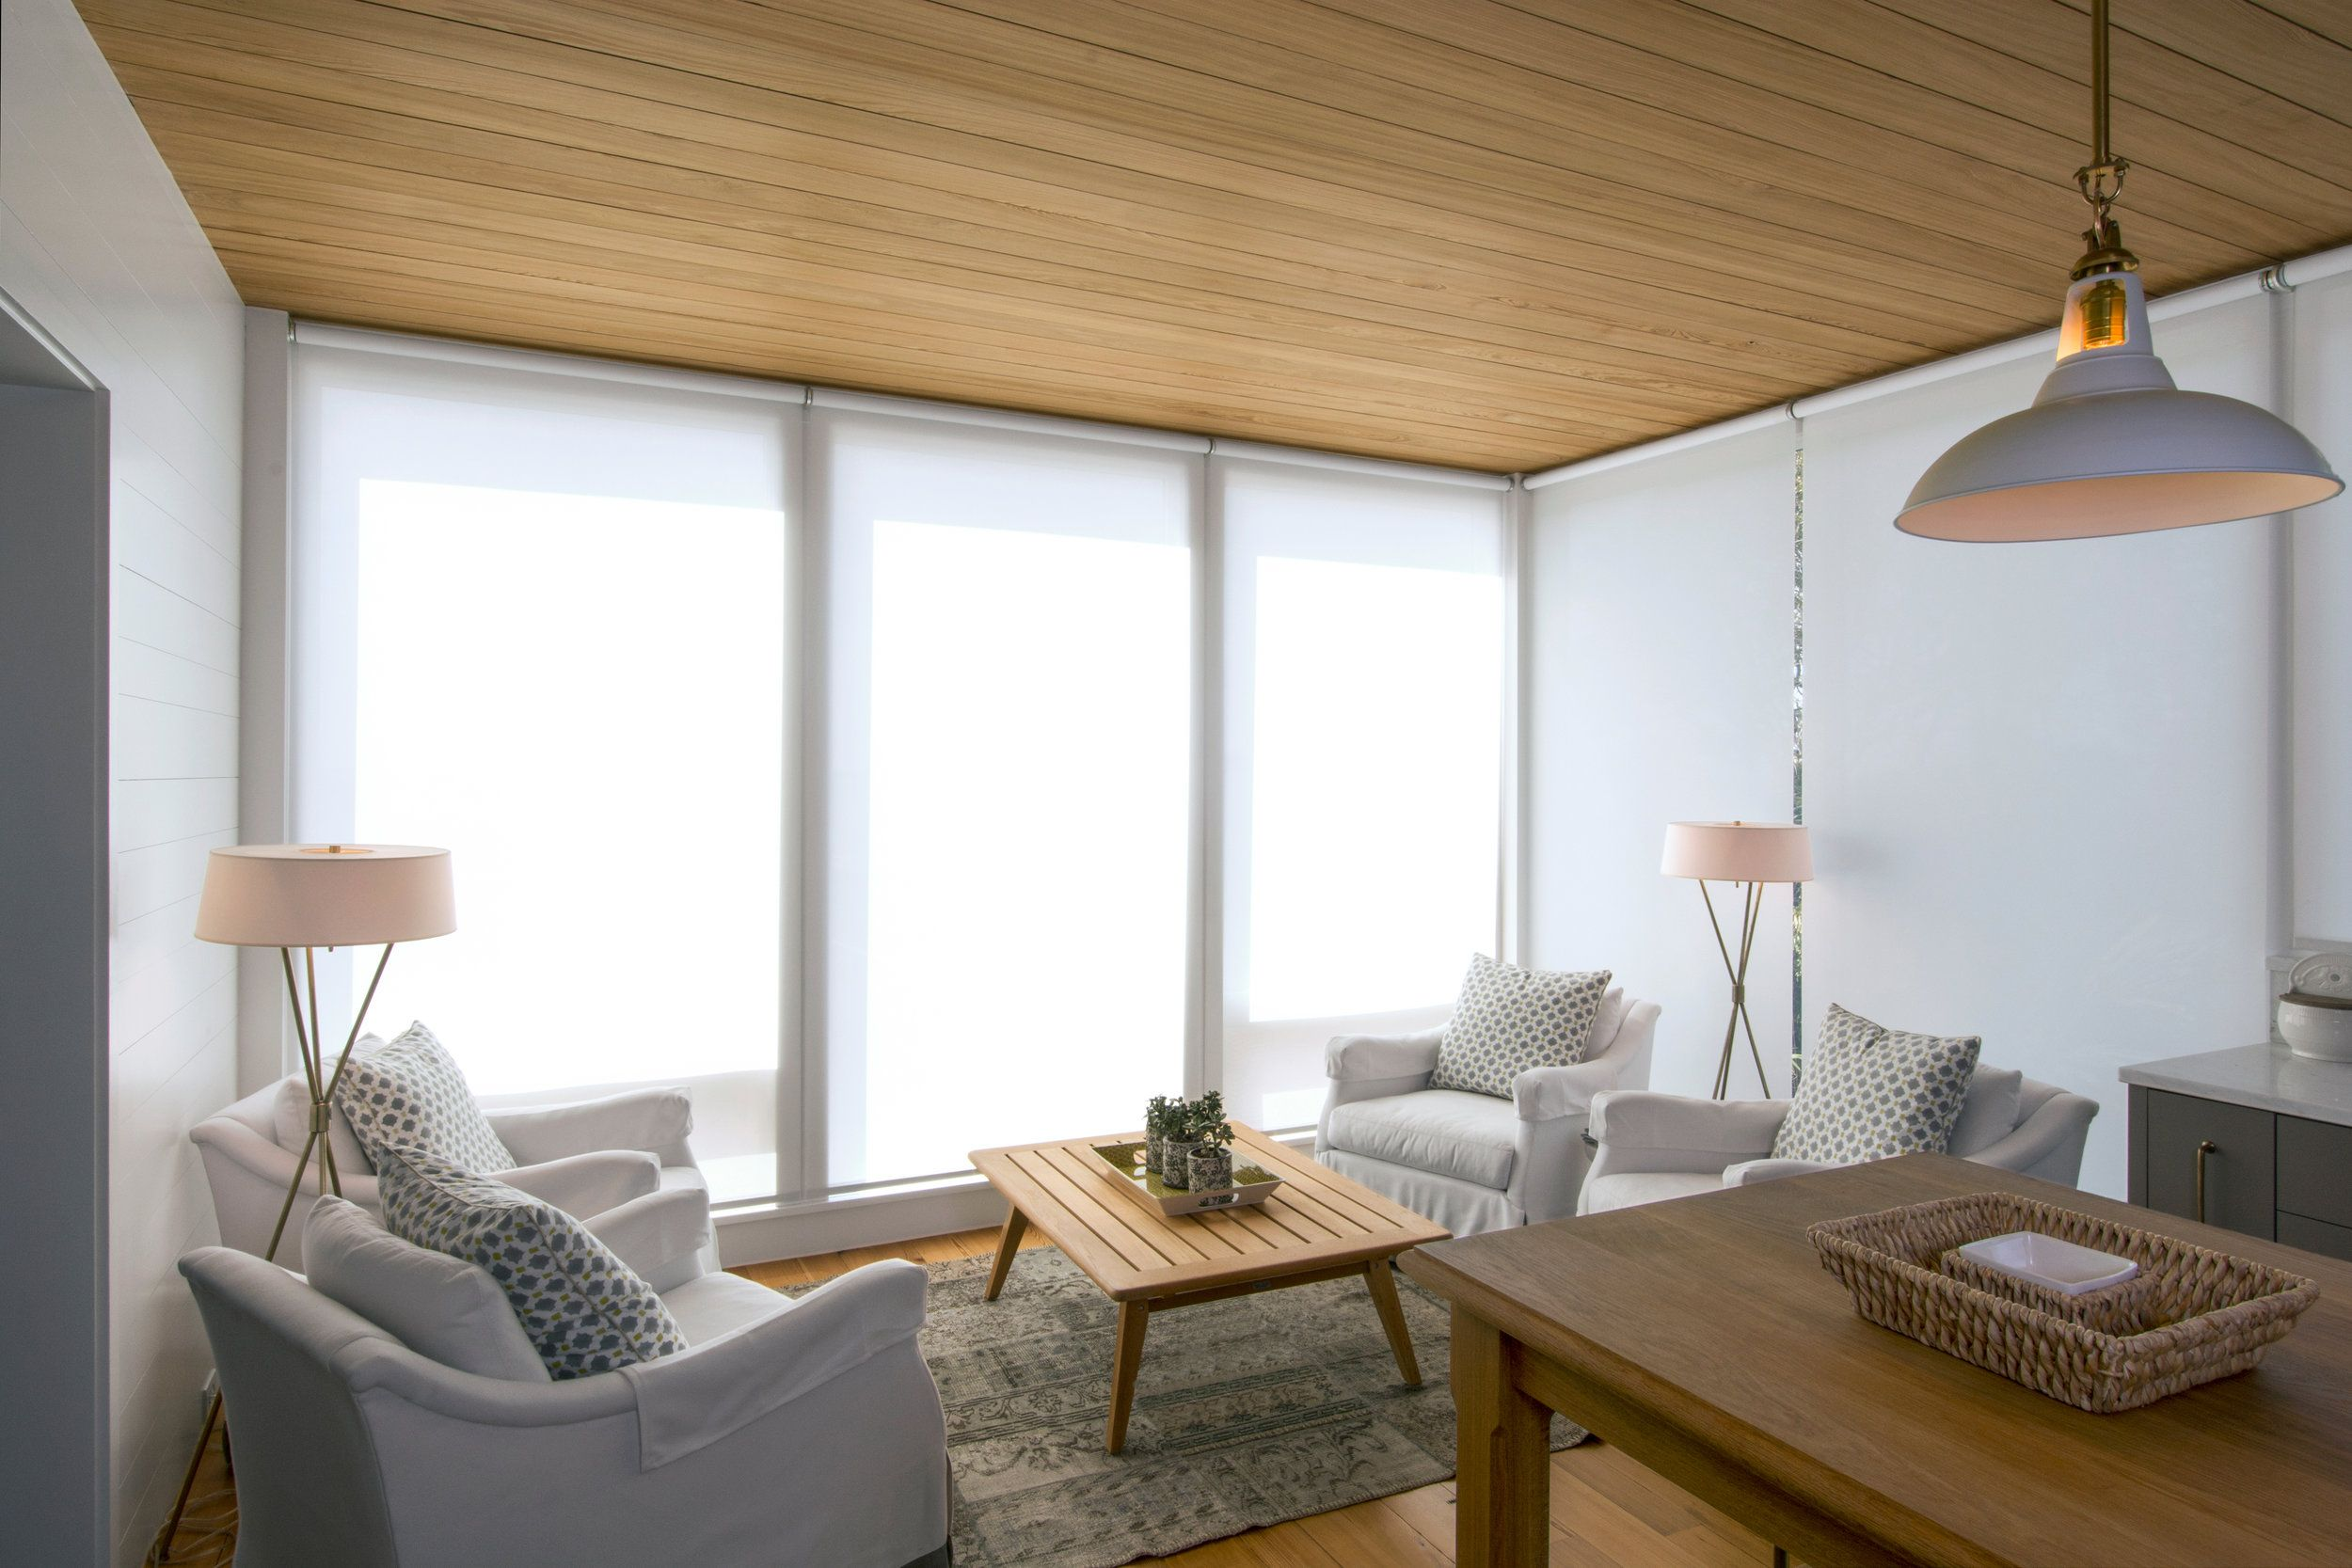 A Modern Take On A Cozy Beach House And These Minimalist Window Shades Blend Rig Motorized Window Shades Modern Window Coverings Contemporary Window Coverings